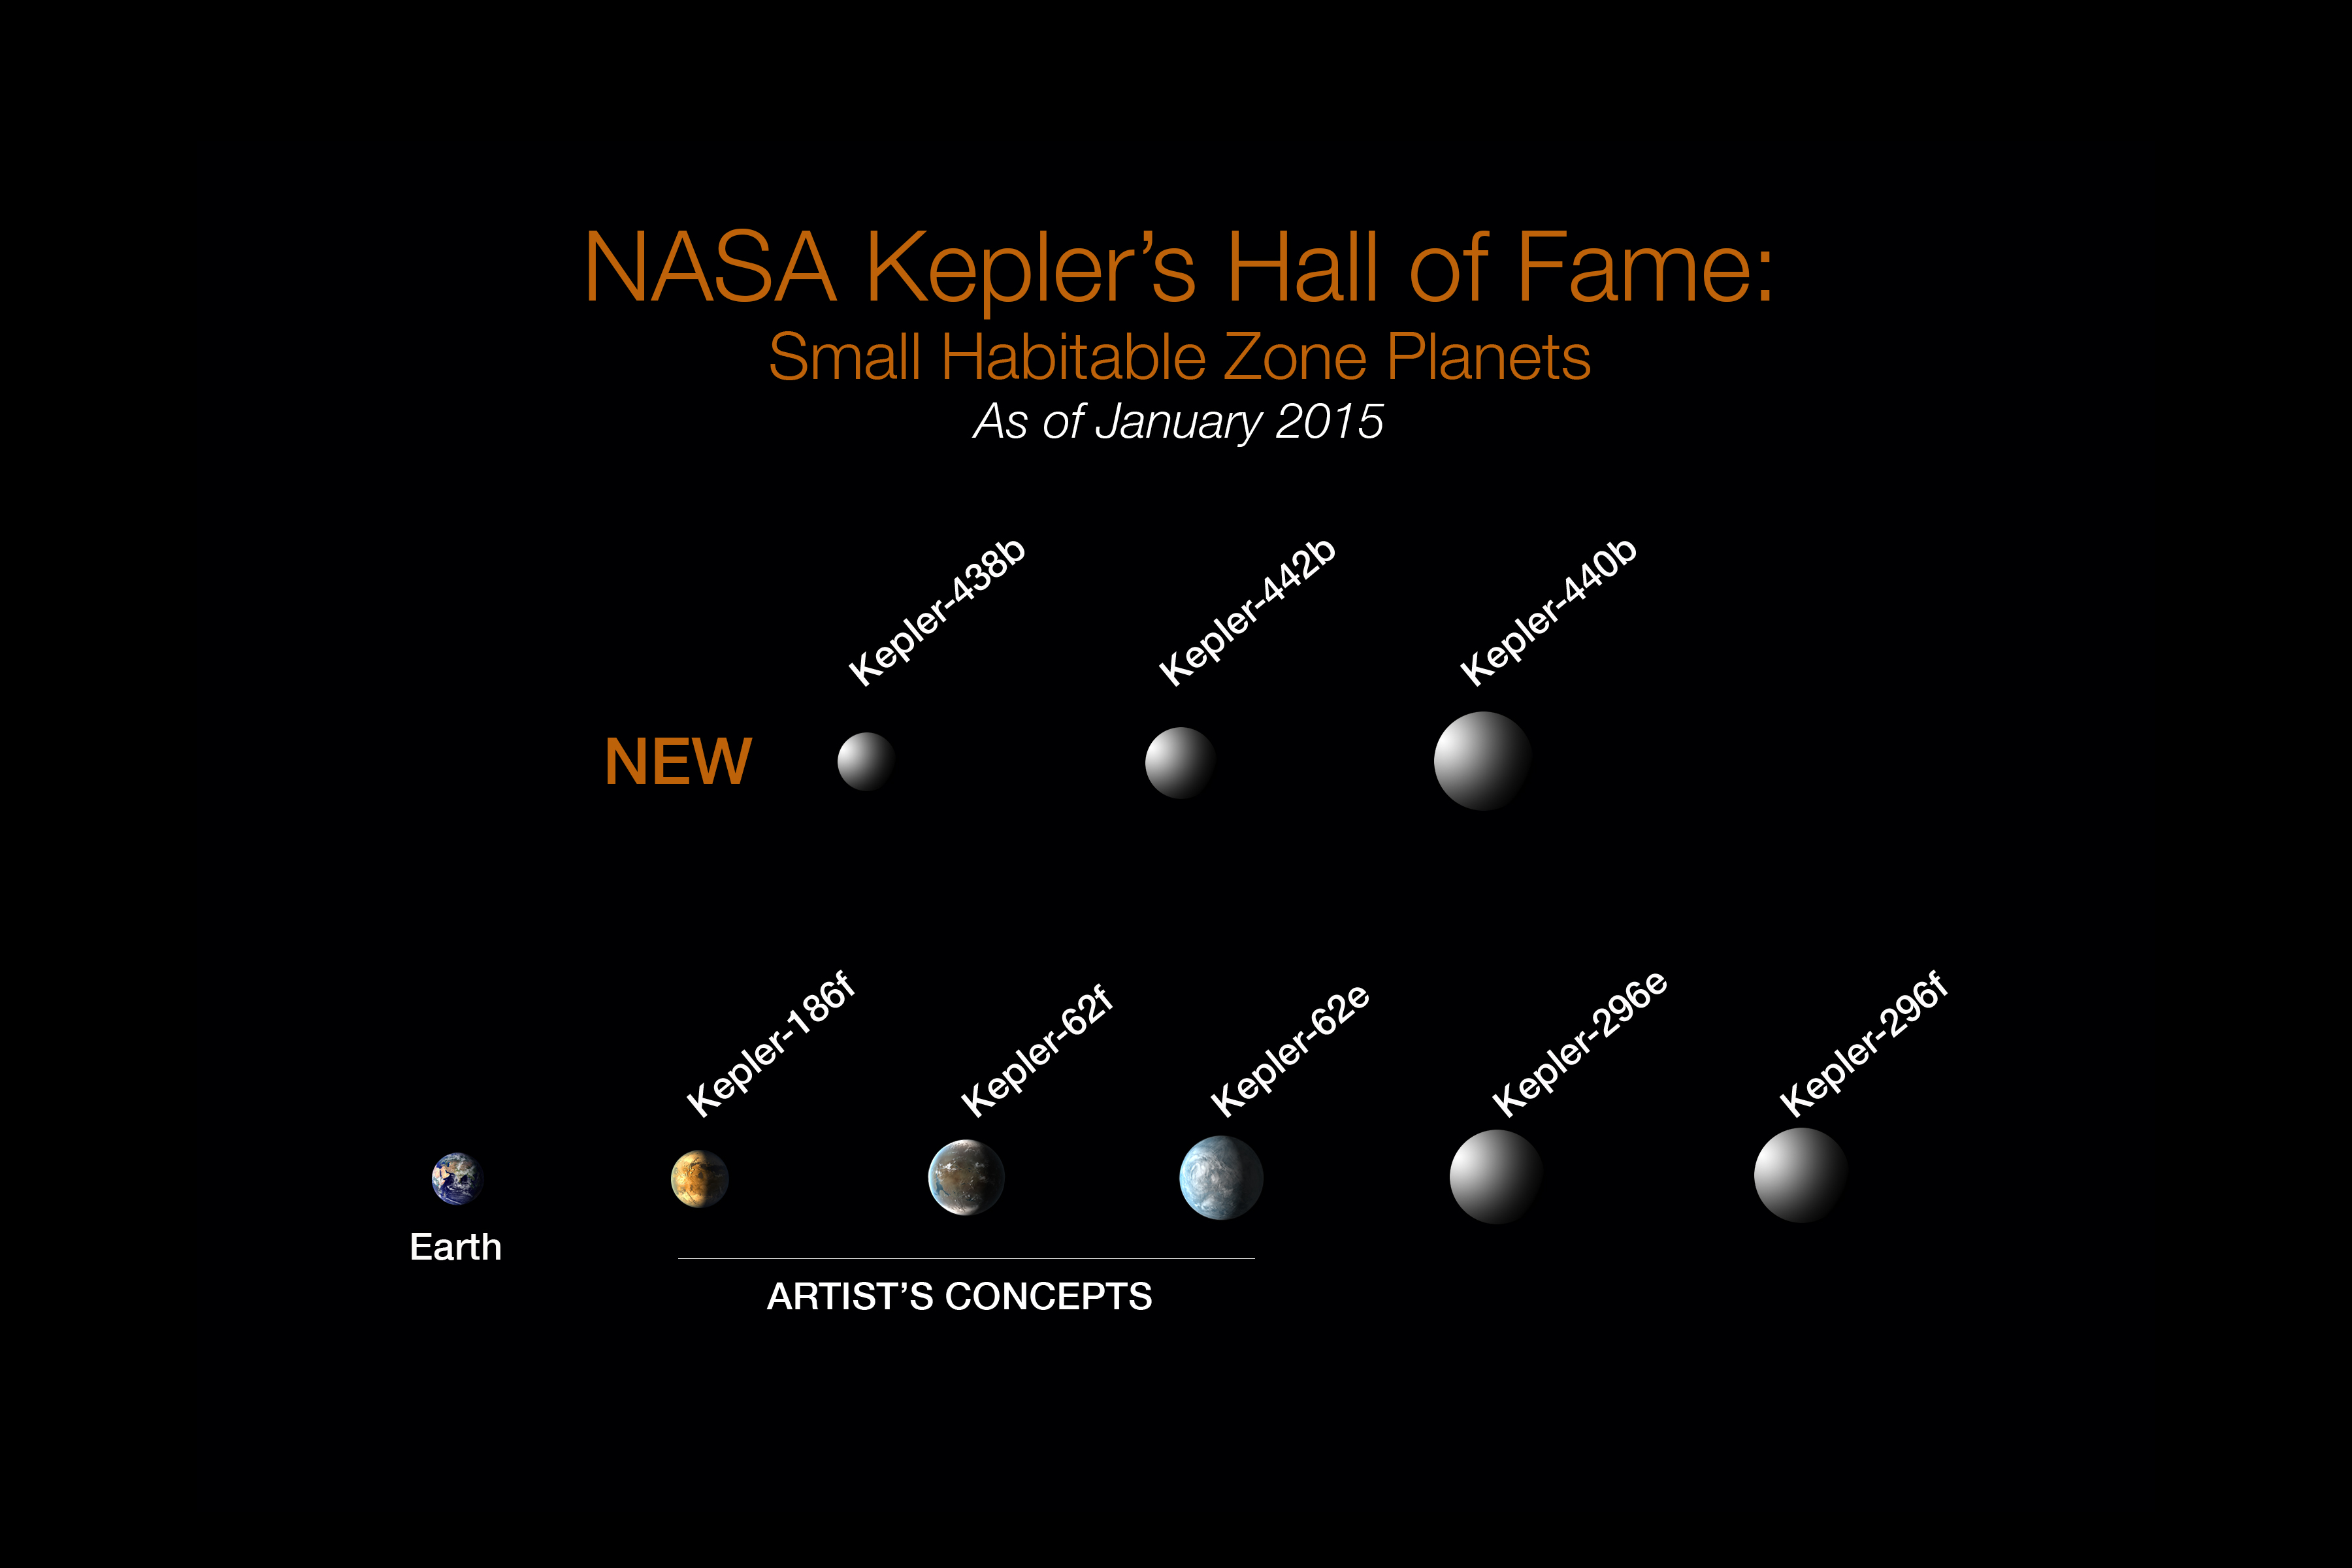 NASA Kepler's Hall of Fame: Of the more than 1,000 verified planets found by NASA's Kepler Space Telescope, eight are less than twice Earth-size and in their stars' habitable zone. All eight orbit stars cooler and smaller than our sun. The search continues for Earth-size habitable zone worlds around sun-like stars. Credit: NASA